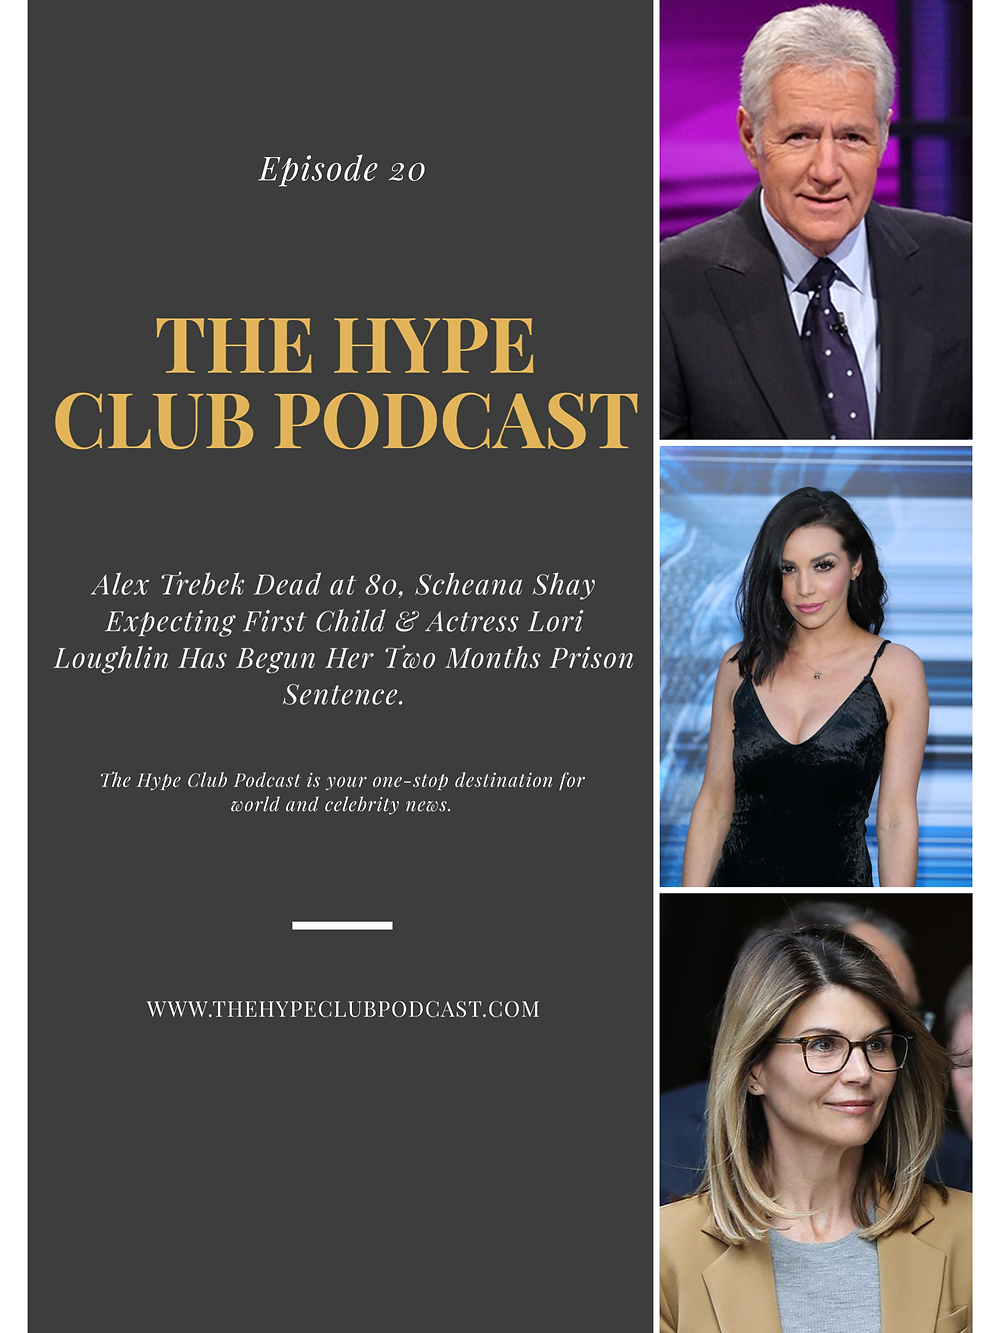 Alex Trebek/Scheana Shay/Lori Loughlin